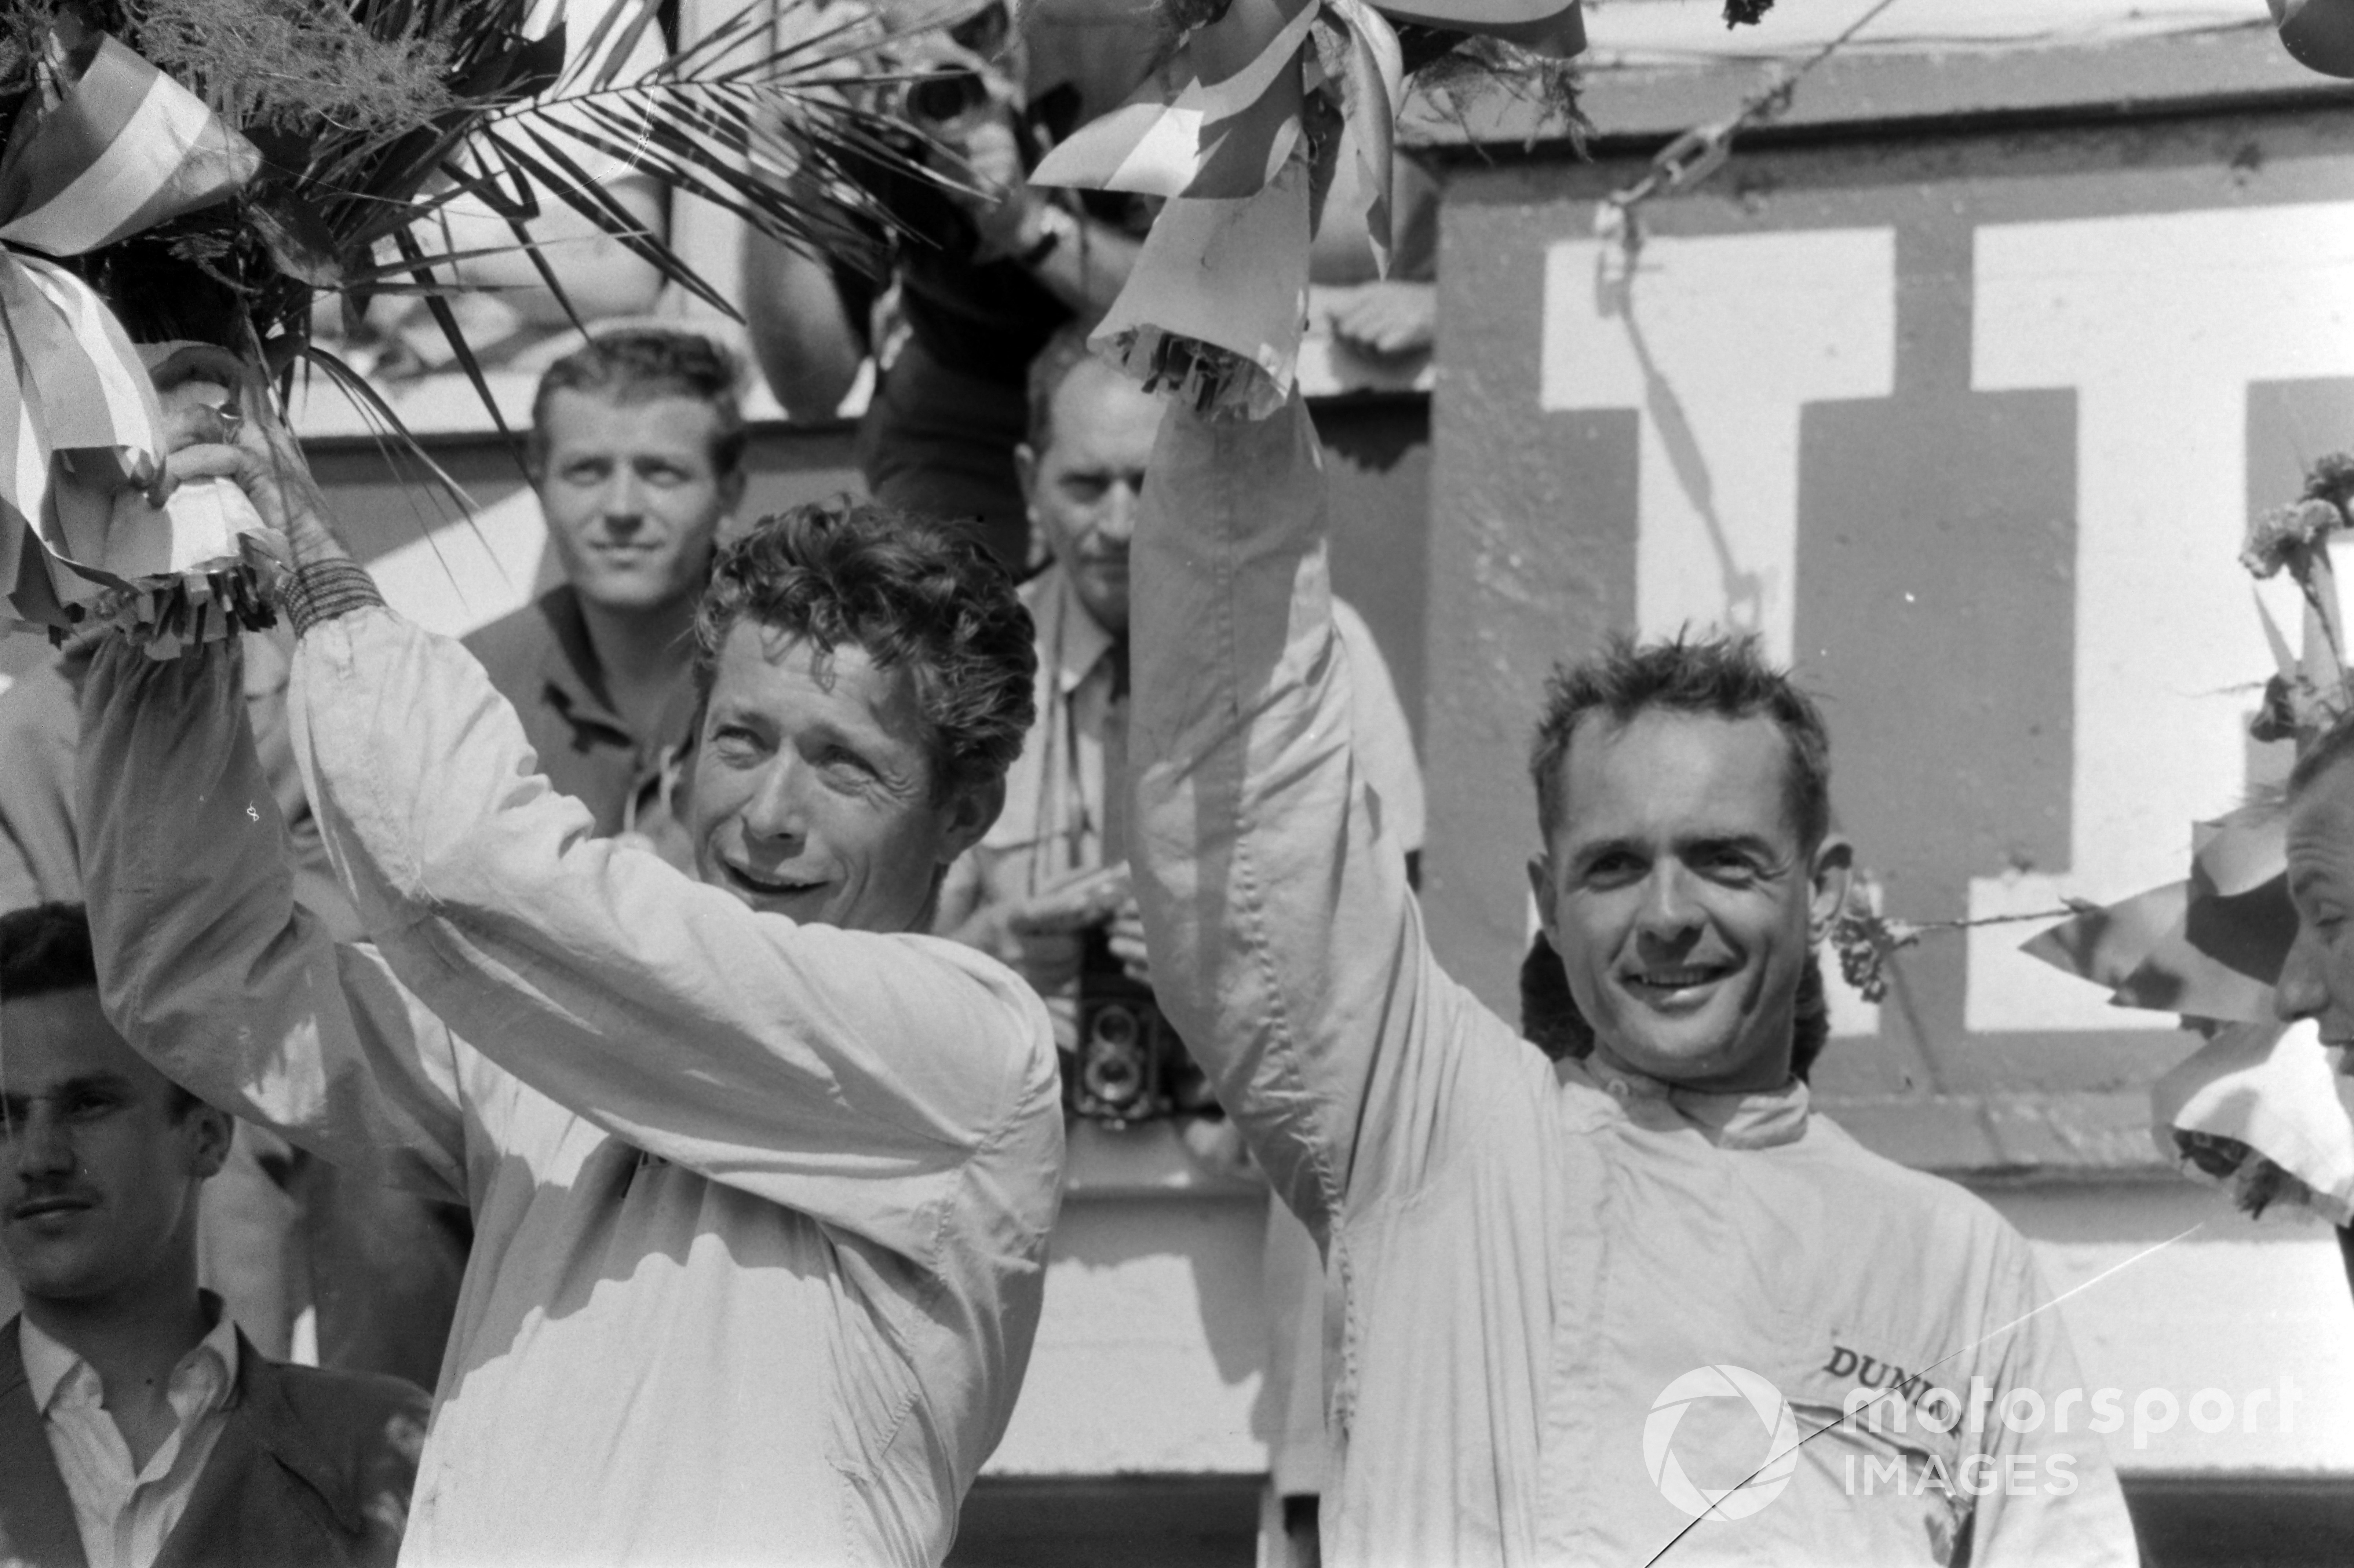 Olivier Gendebien and Phil Hill, 1st position, raise their bouquets on the podium at the 1962 Le Mans 24 Hours